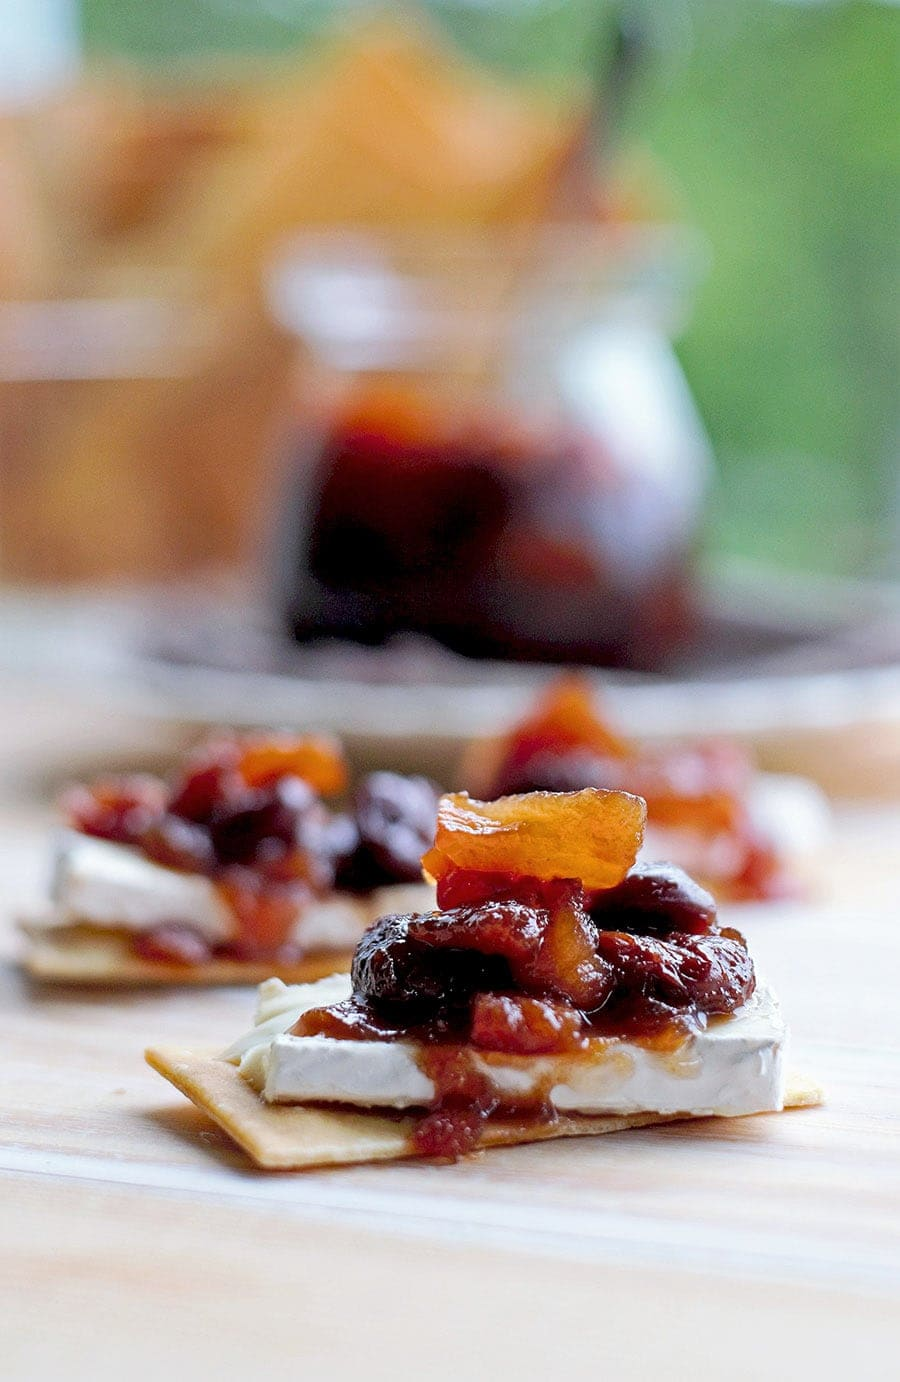 Dried Fruit Compote is a versatile topping for a variety of sweet and savory snacks. Sweet, fruity and spiced with cinnamon. nutmeg and honey.